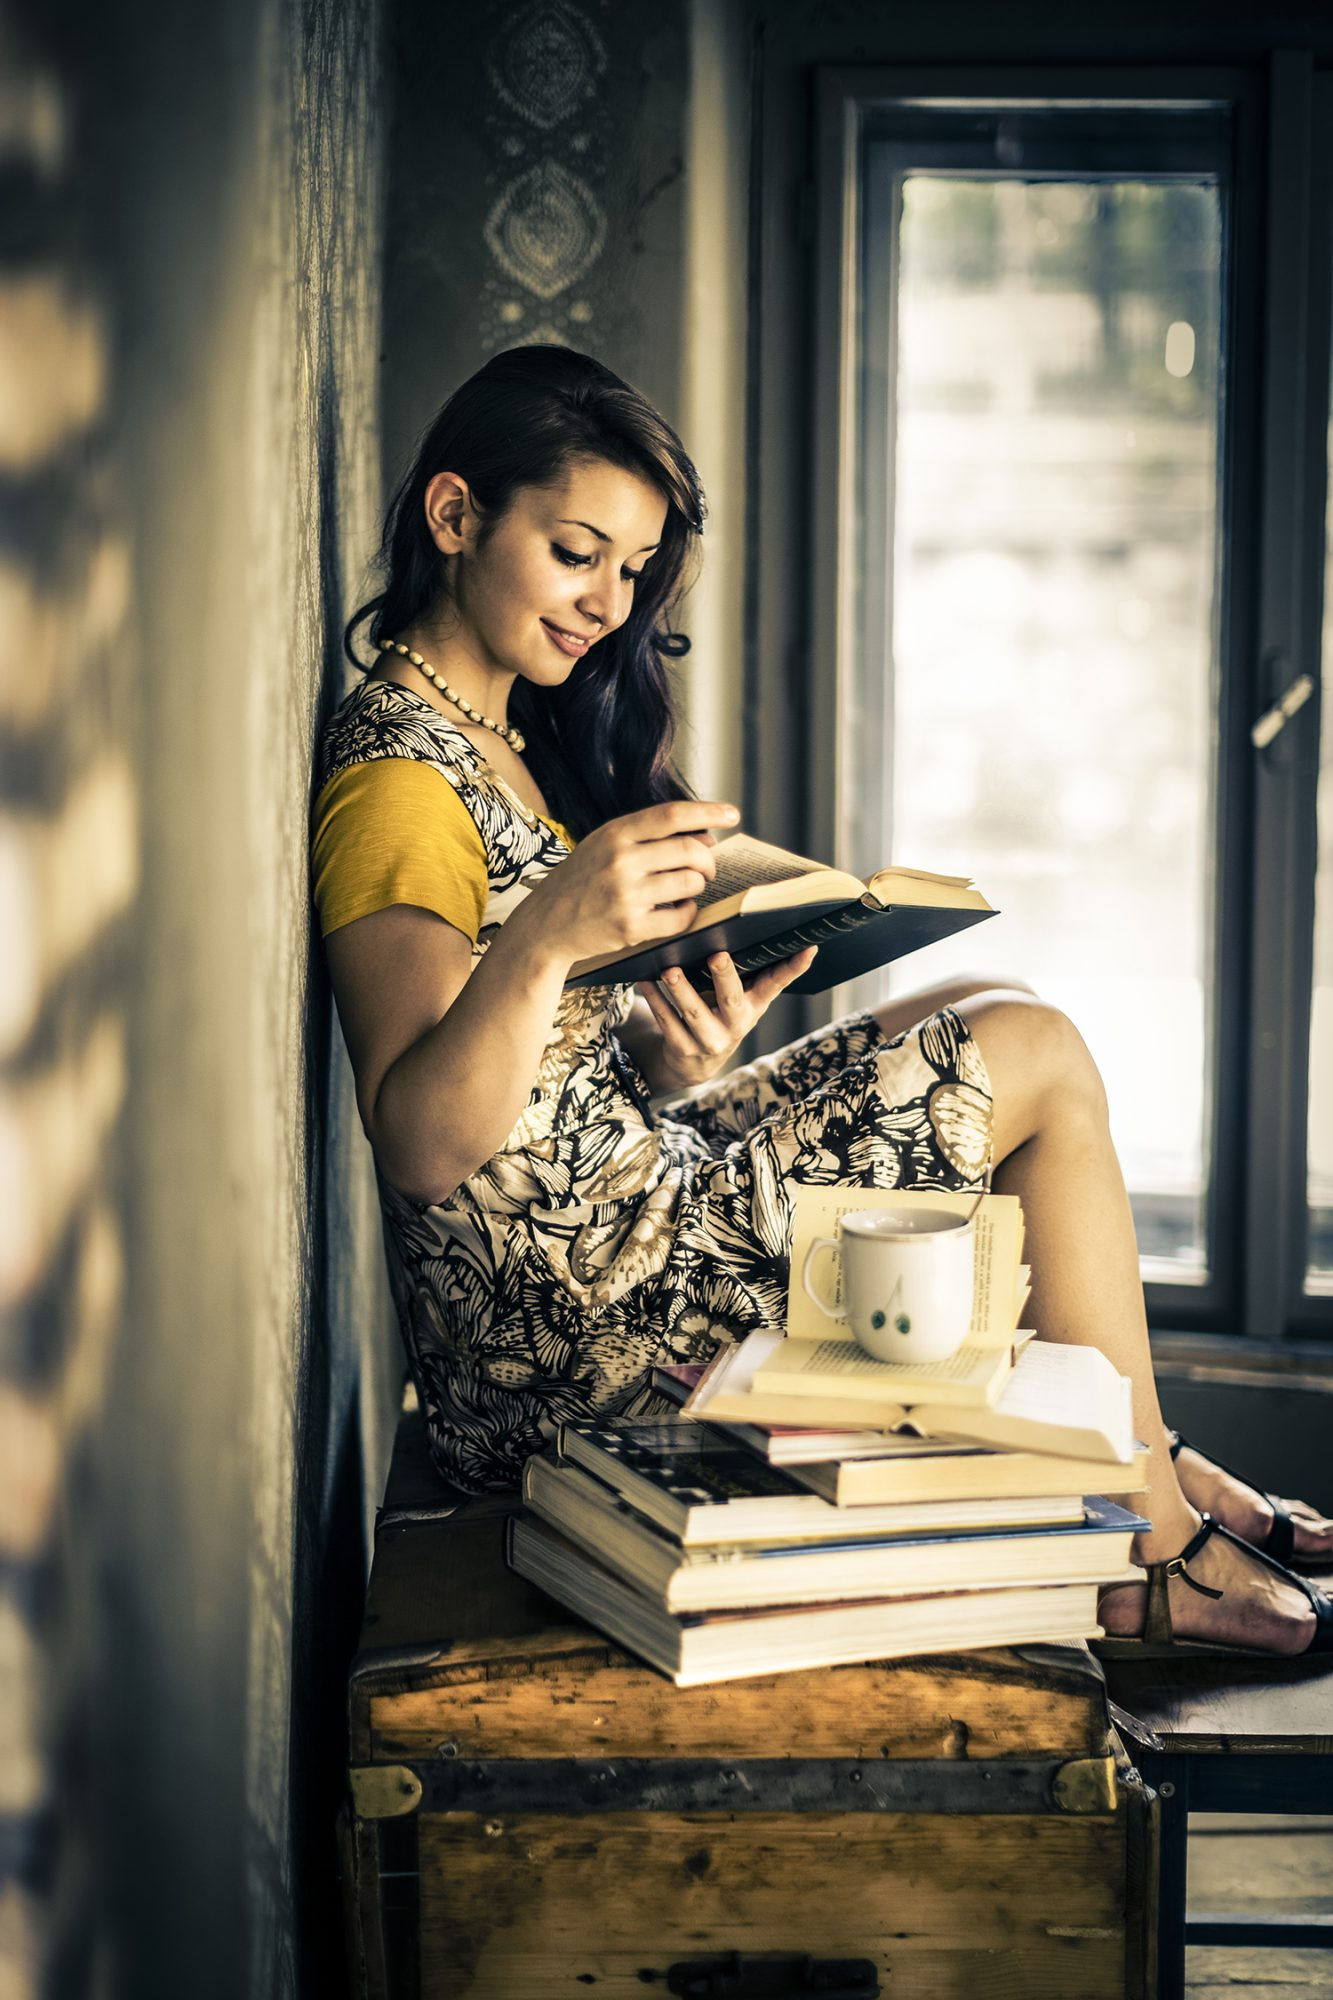 Woman Looking at Old Books